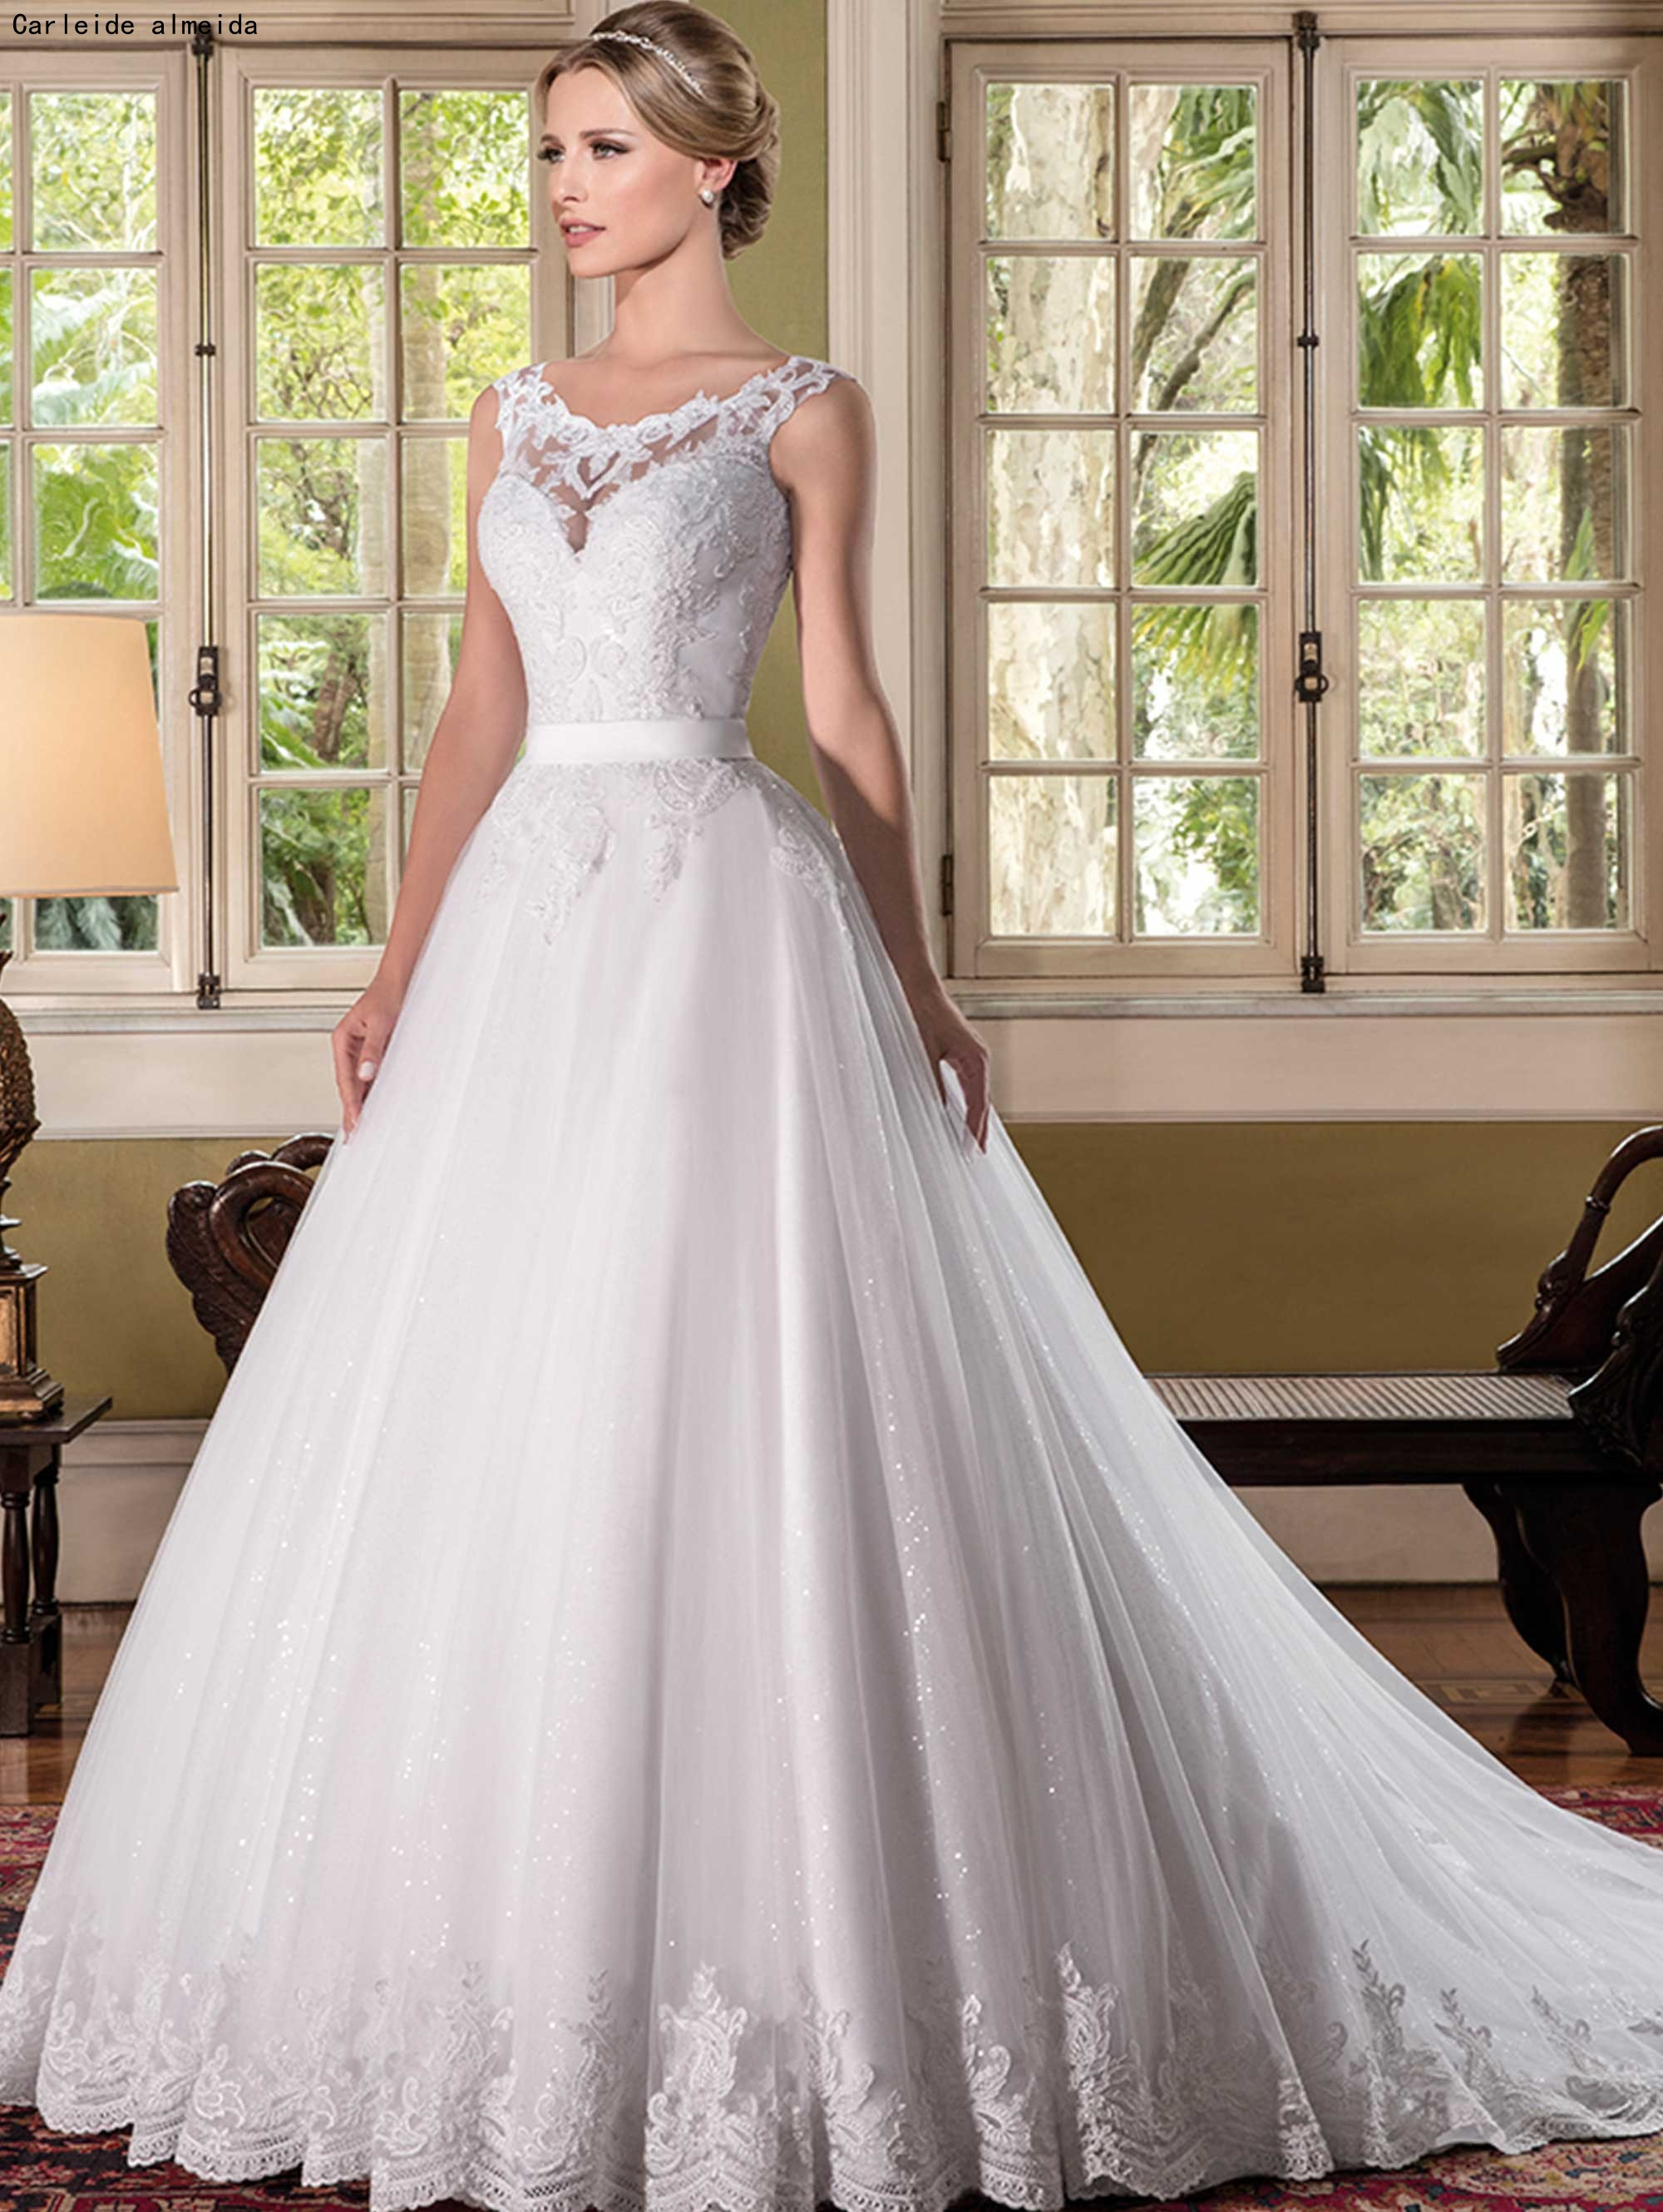 Scoop Shinning Tulle Ball Gown Wedding Dresses With Lace Appliques Sexy Back Bride Dress